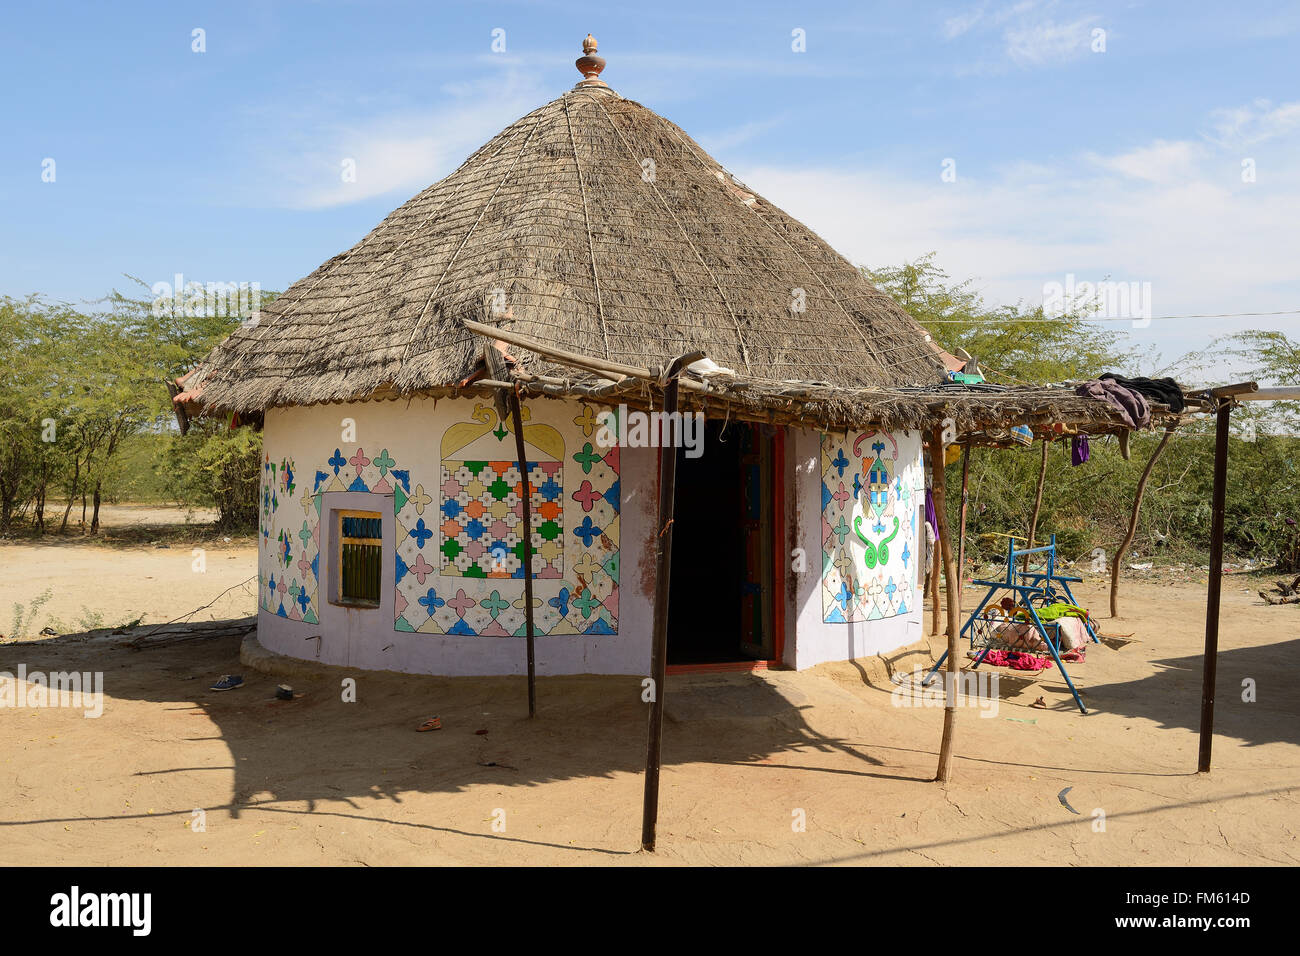 Traditionally Decorated Hut In The Tribal Village On Desert India Gujarat State